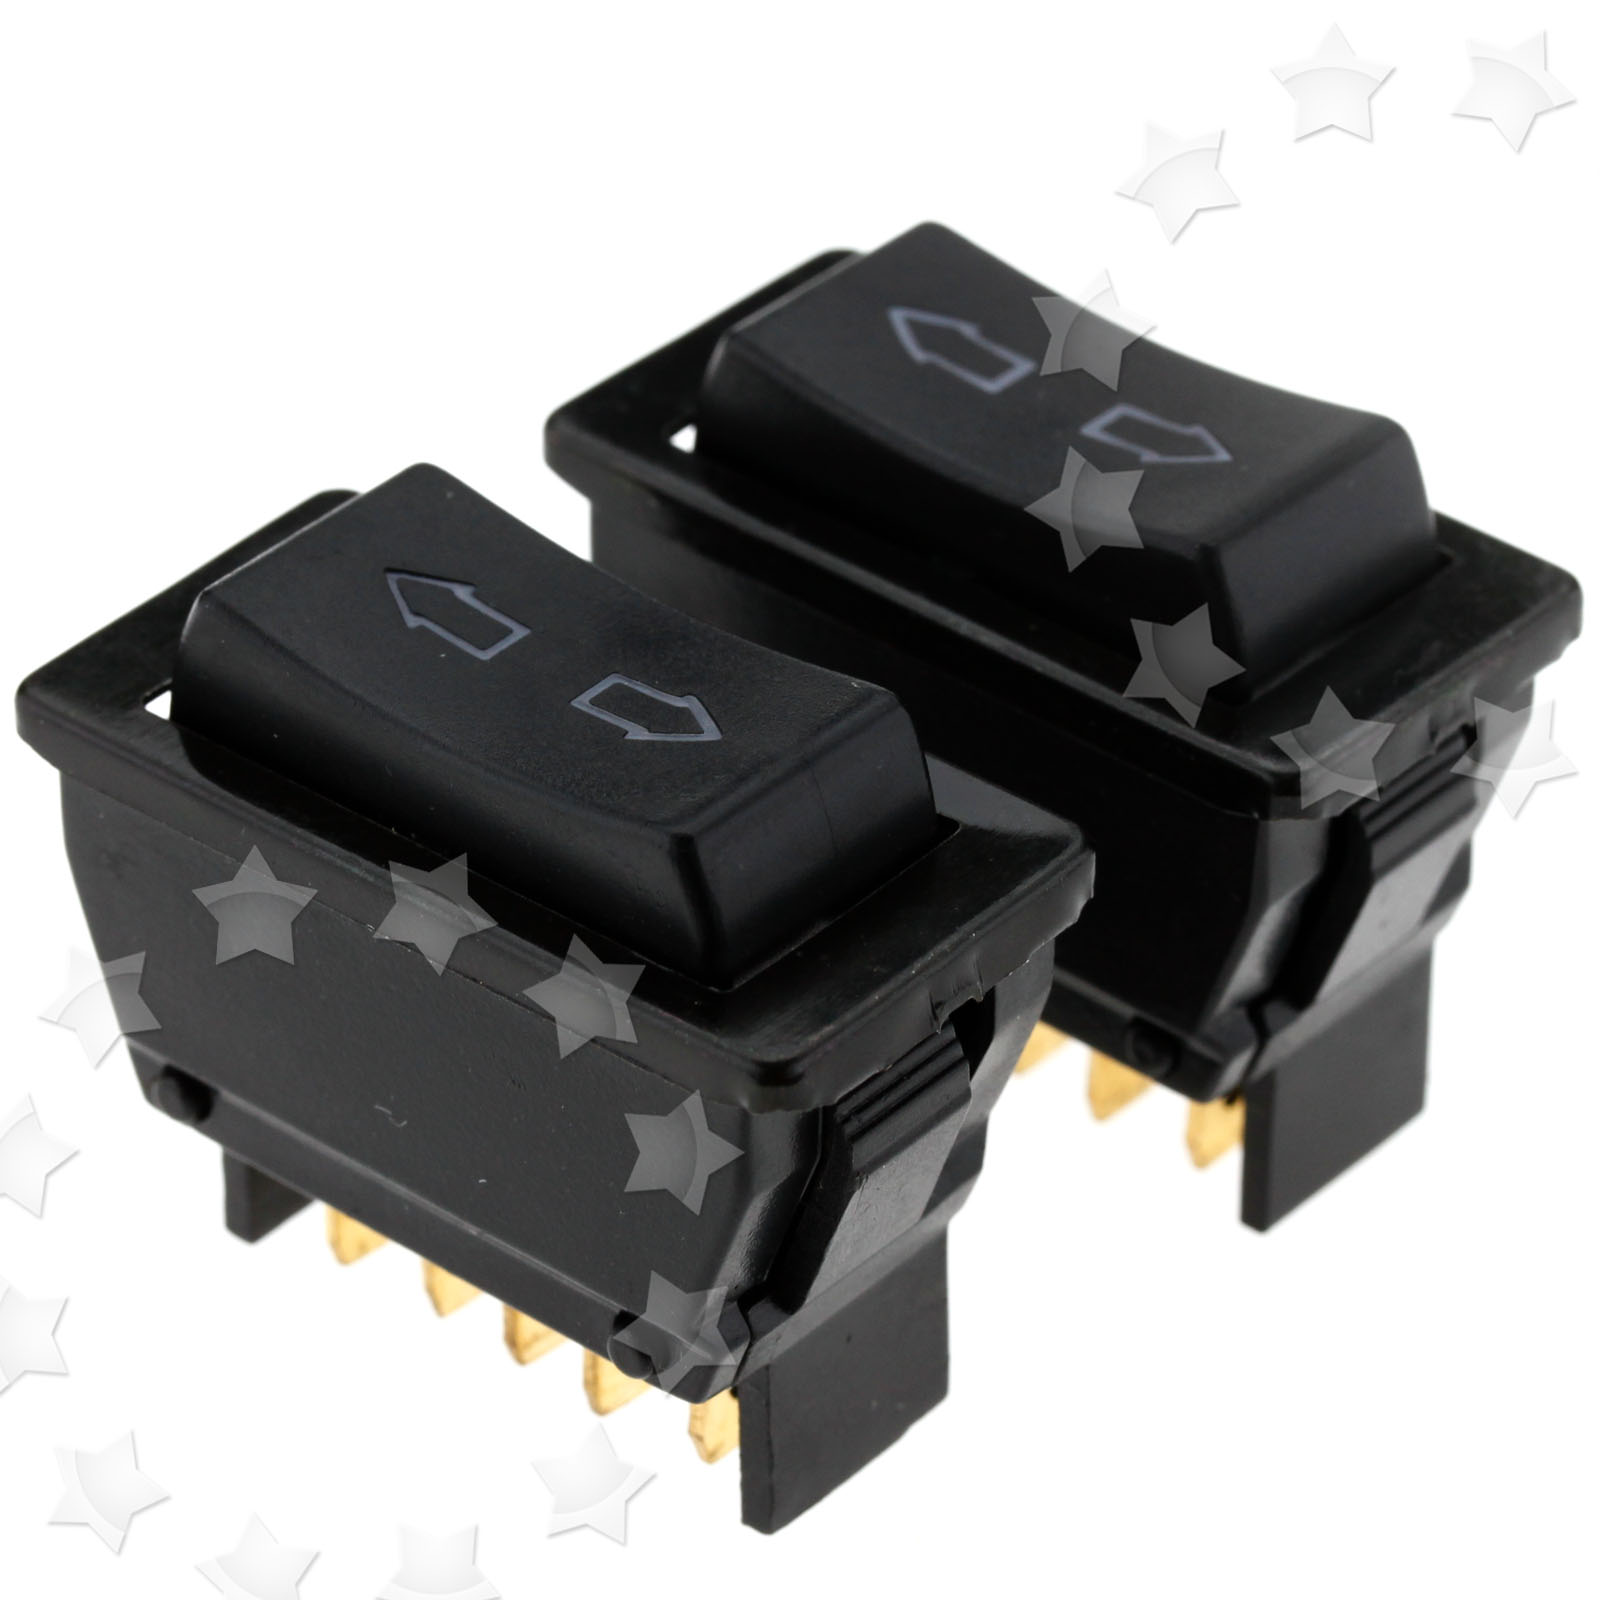 2 Pieces 12v Led Car Electric Window Aerial Up Down Rocker